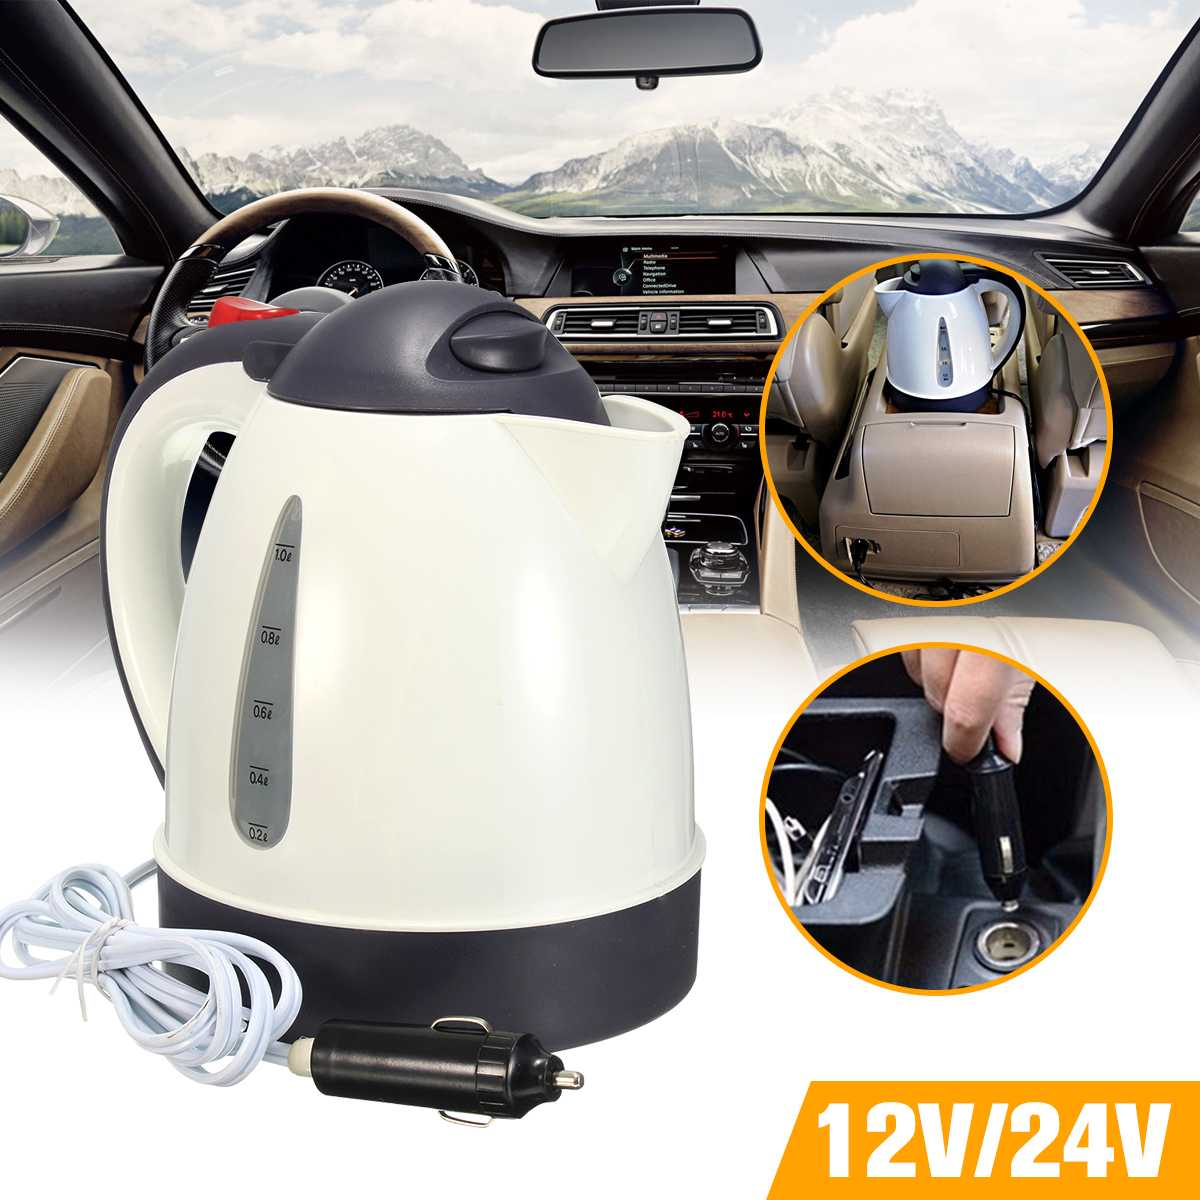 Car-Kettle Heater-Warmer Coffee Travel Portable 304-Stainless-Steel Auto for Hot-Tea